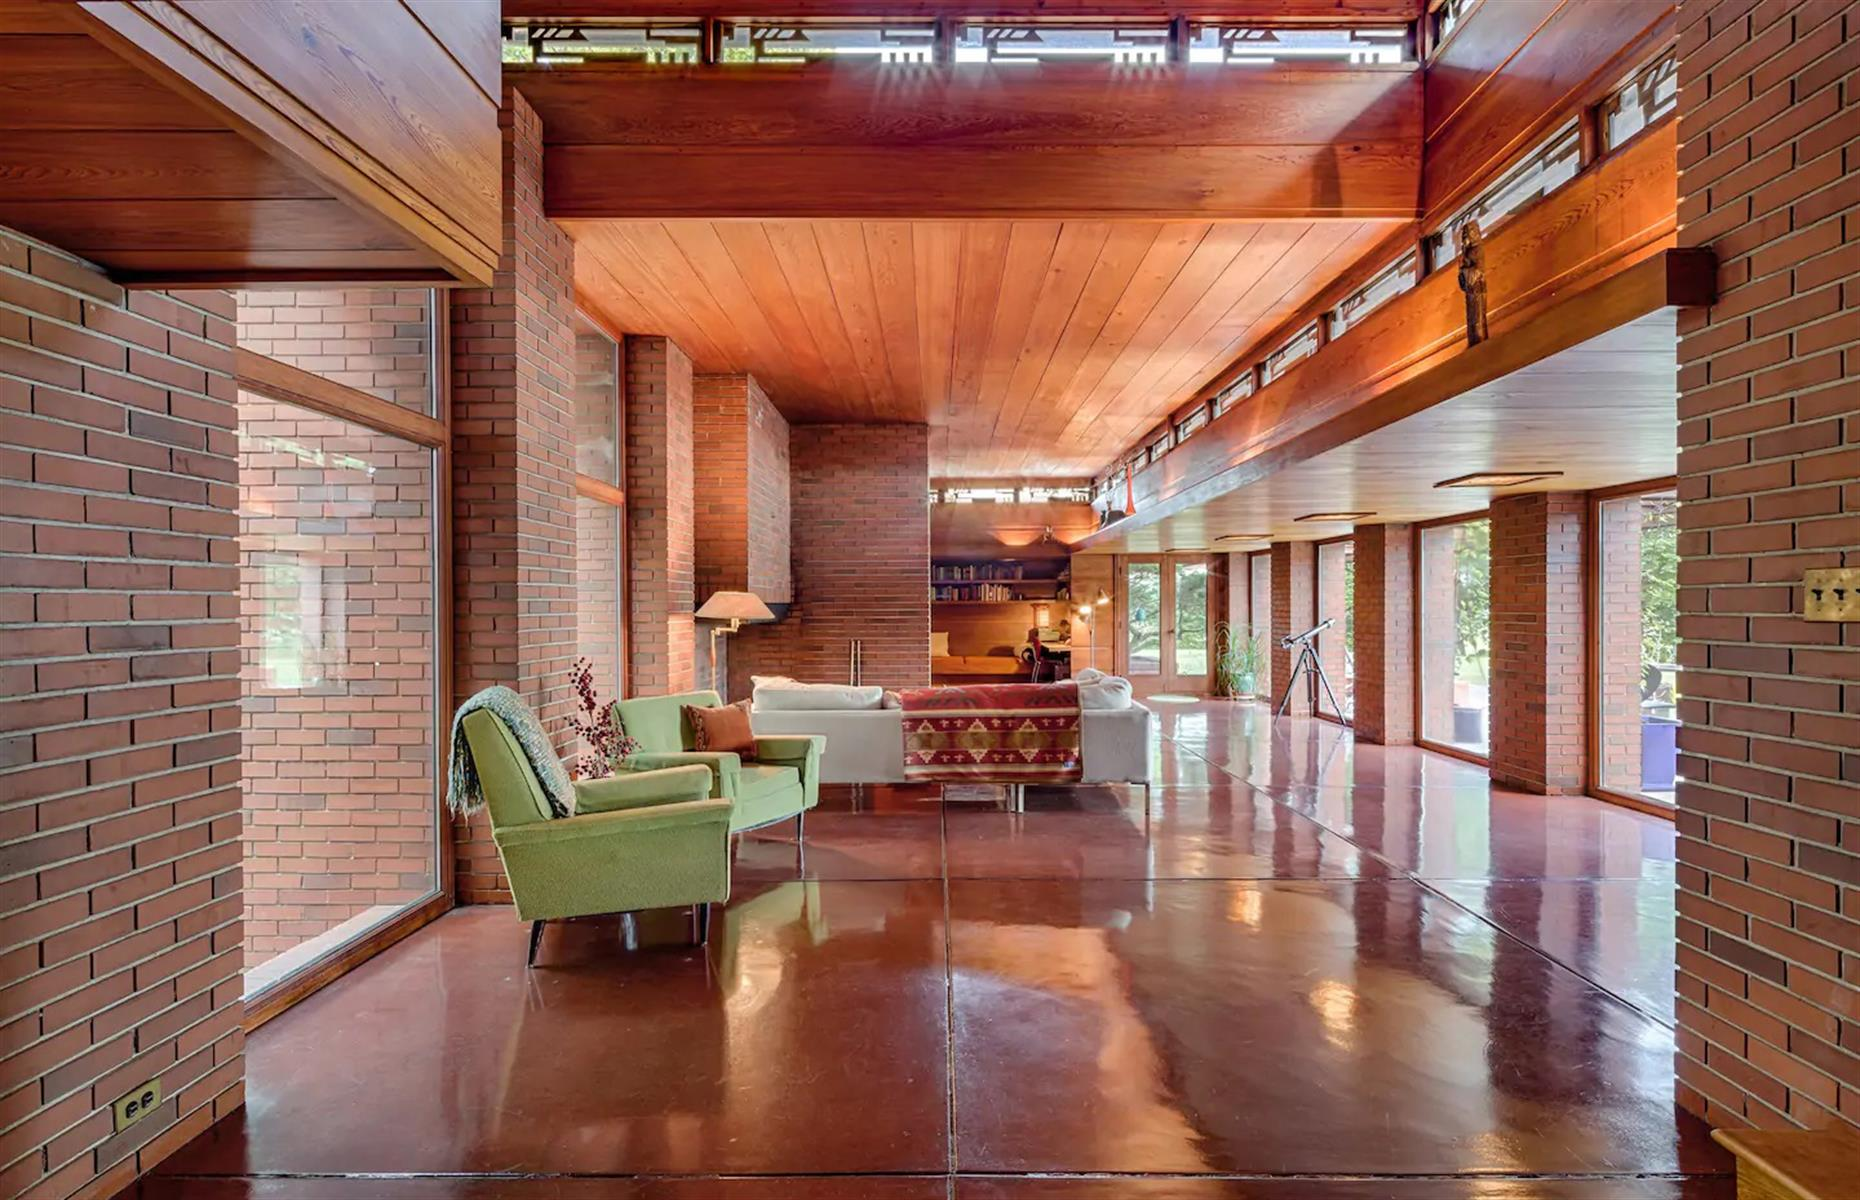 Slide 51 of 52: Built by the legendary American architect Frank Lloyd Wright, this home, located in Two Rivers, is an architectural and design masterpiece. Finished in 1940, the house retains lots of its original features that are complemented by modern amenities for a comfortable stay. The four-bedroom house features a large fireplace, floor-to-ceiling windows and thoughtful details throughout.